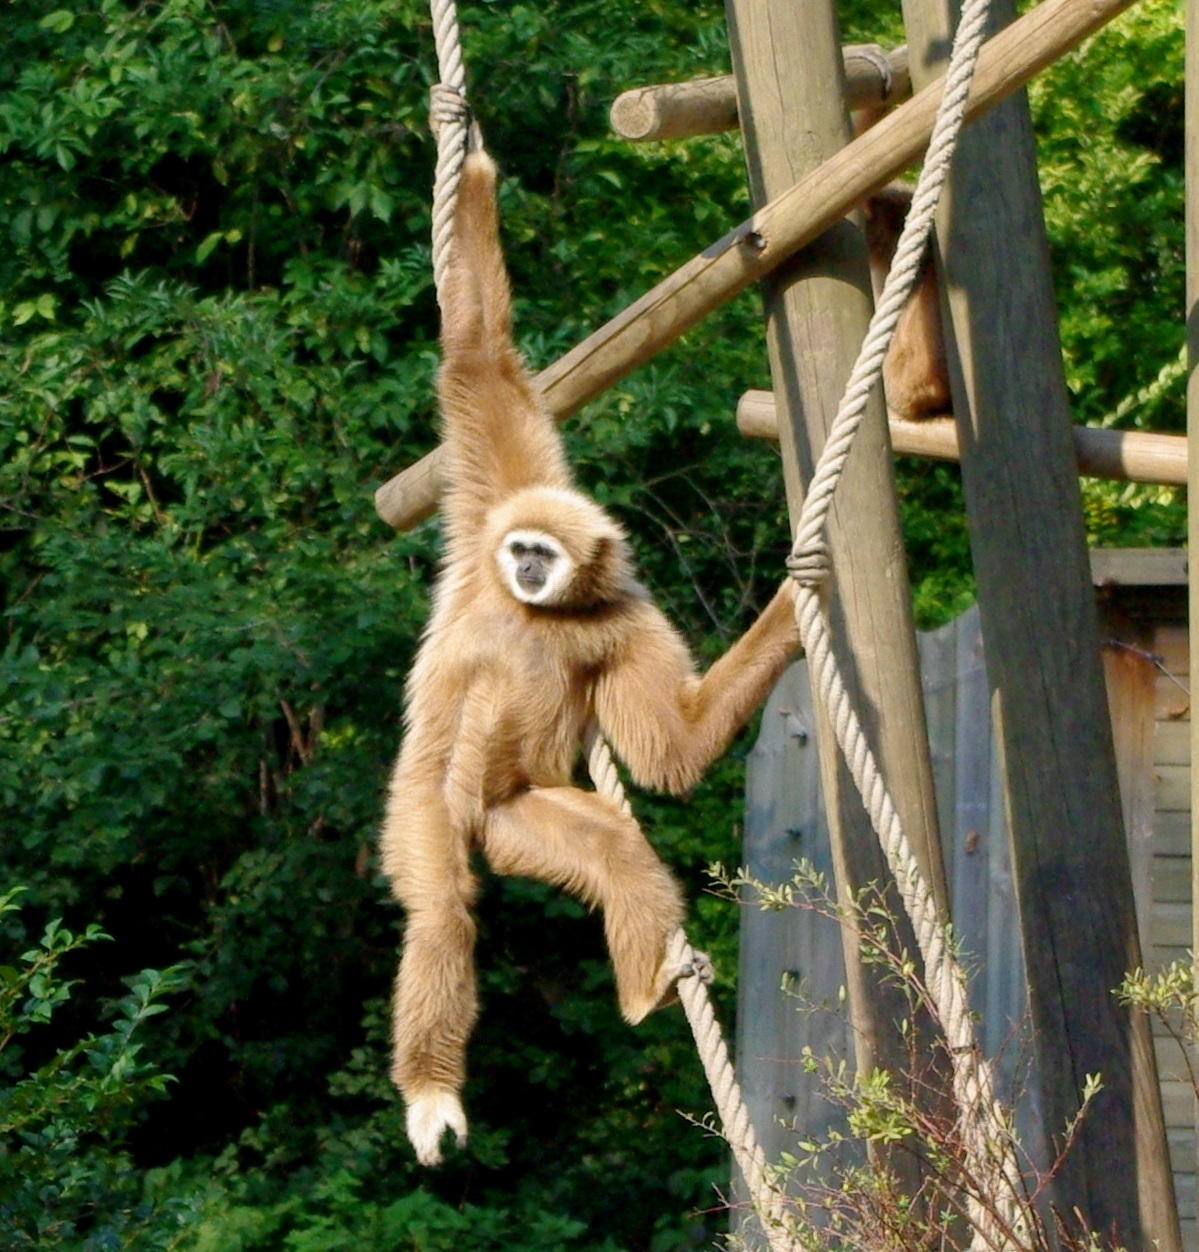 gibbon big and beautiful singles A major uk tourist attraction was on lockdown this morning after reports that a gibbon had escaped from its enclosure at a zoo visitors at twycross zoo in leicestershire were told to make their.